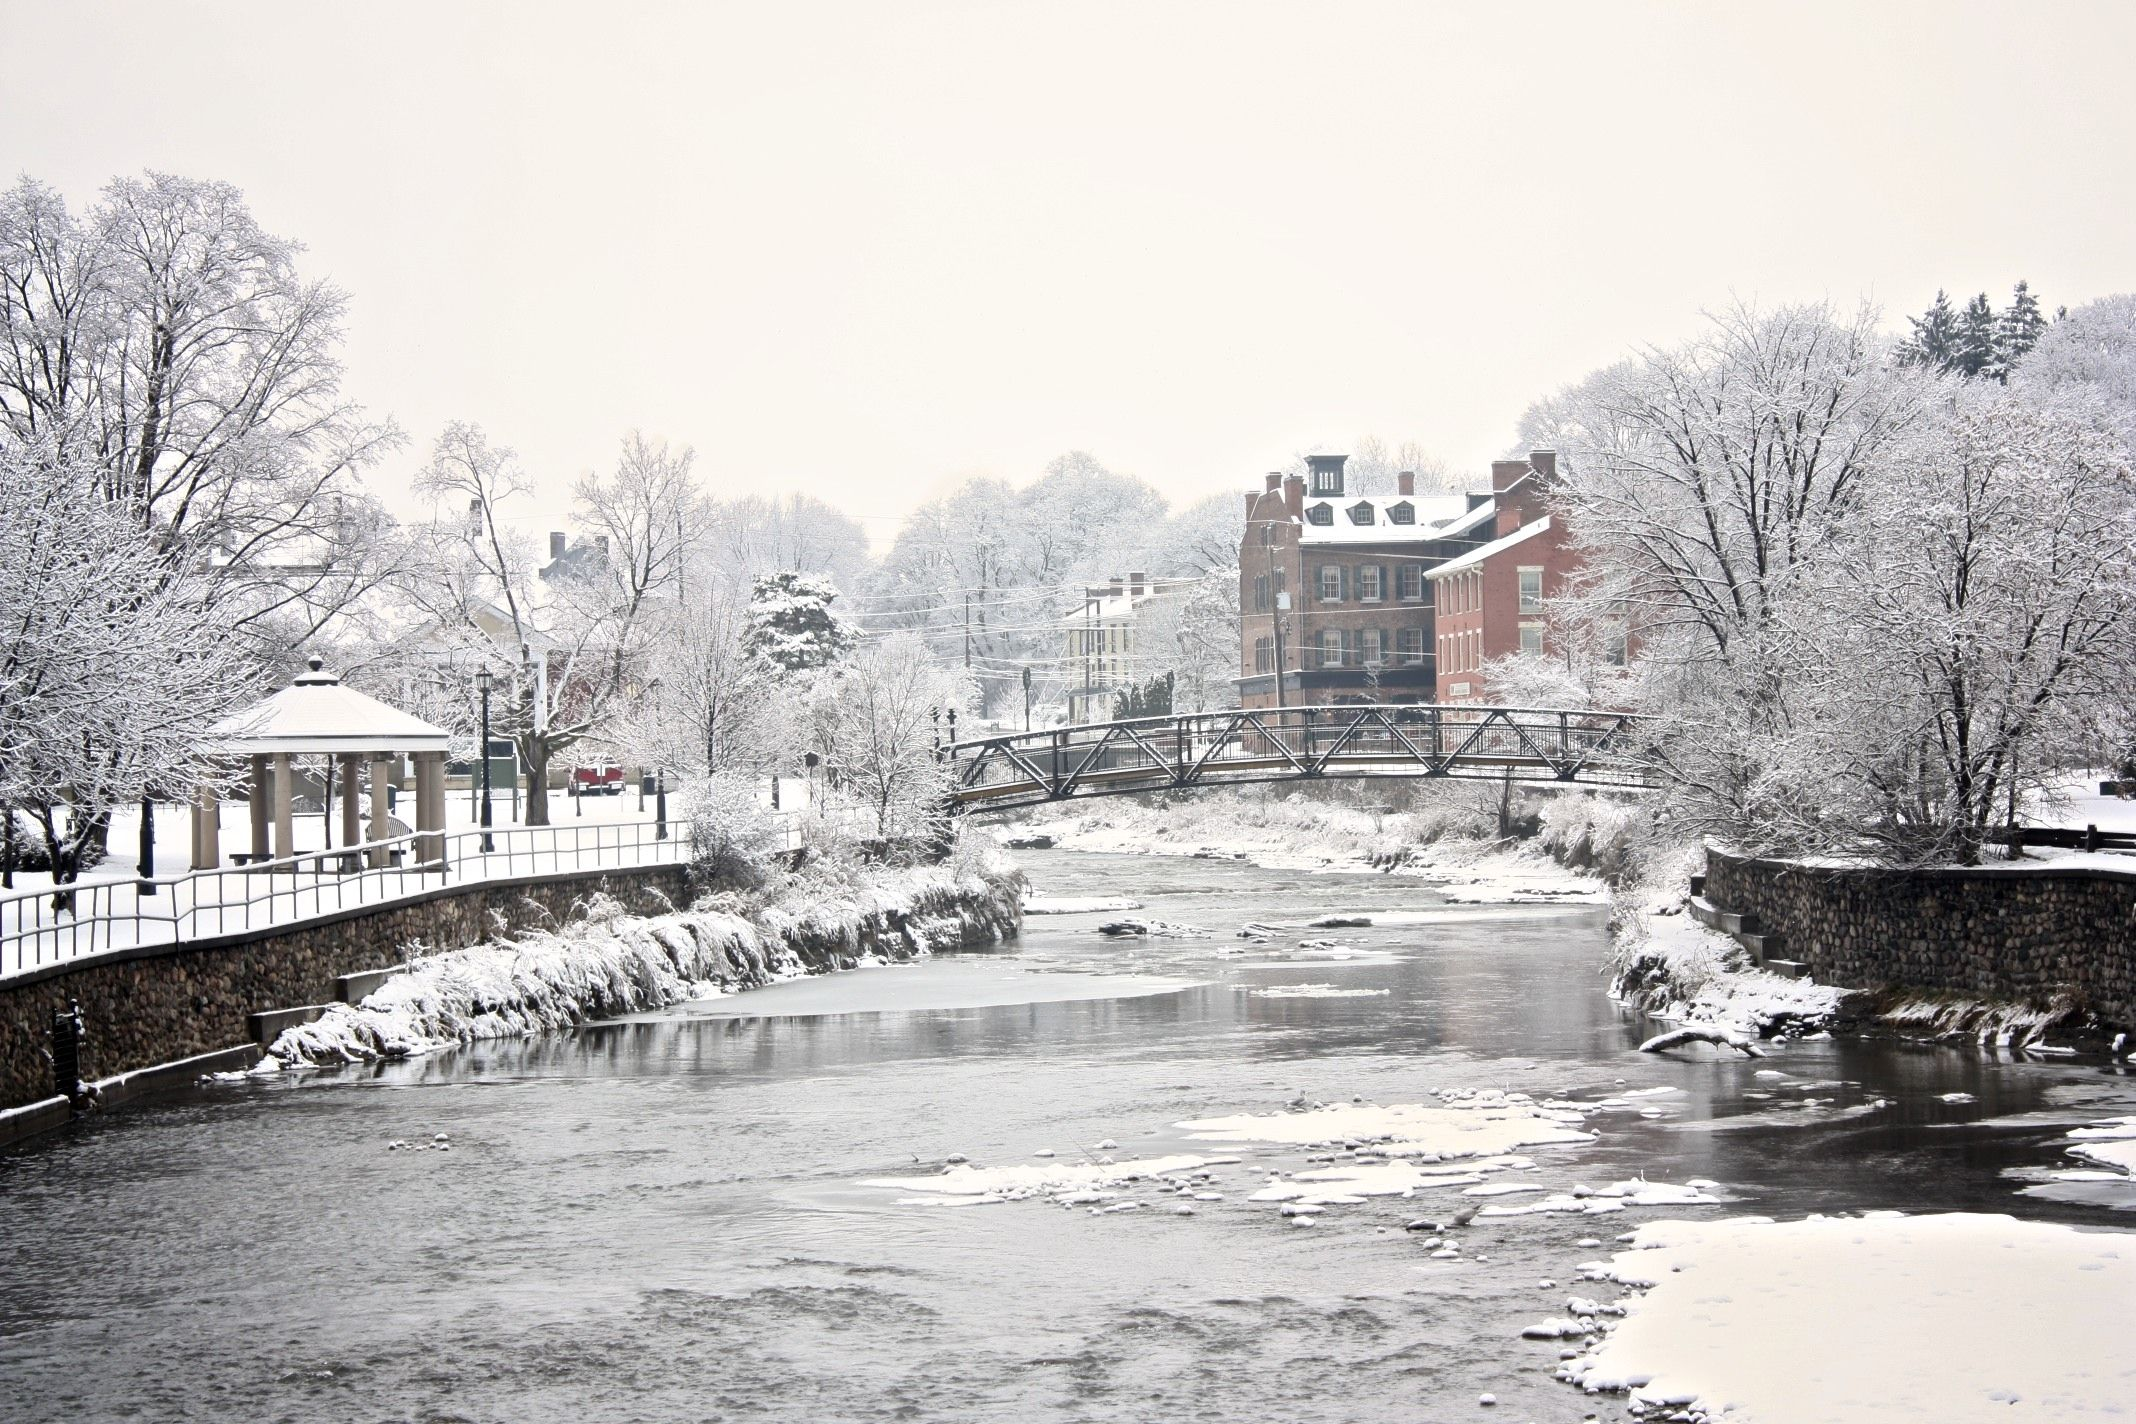 Port Hope, Ontario, after an ice storm. Places